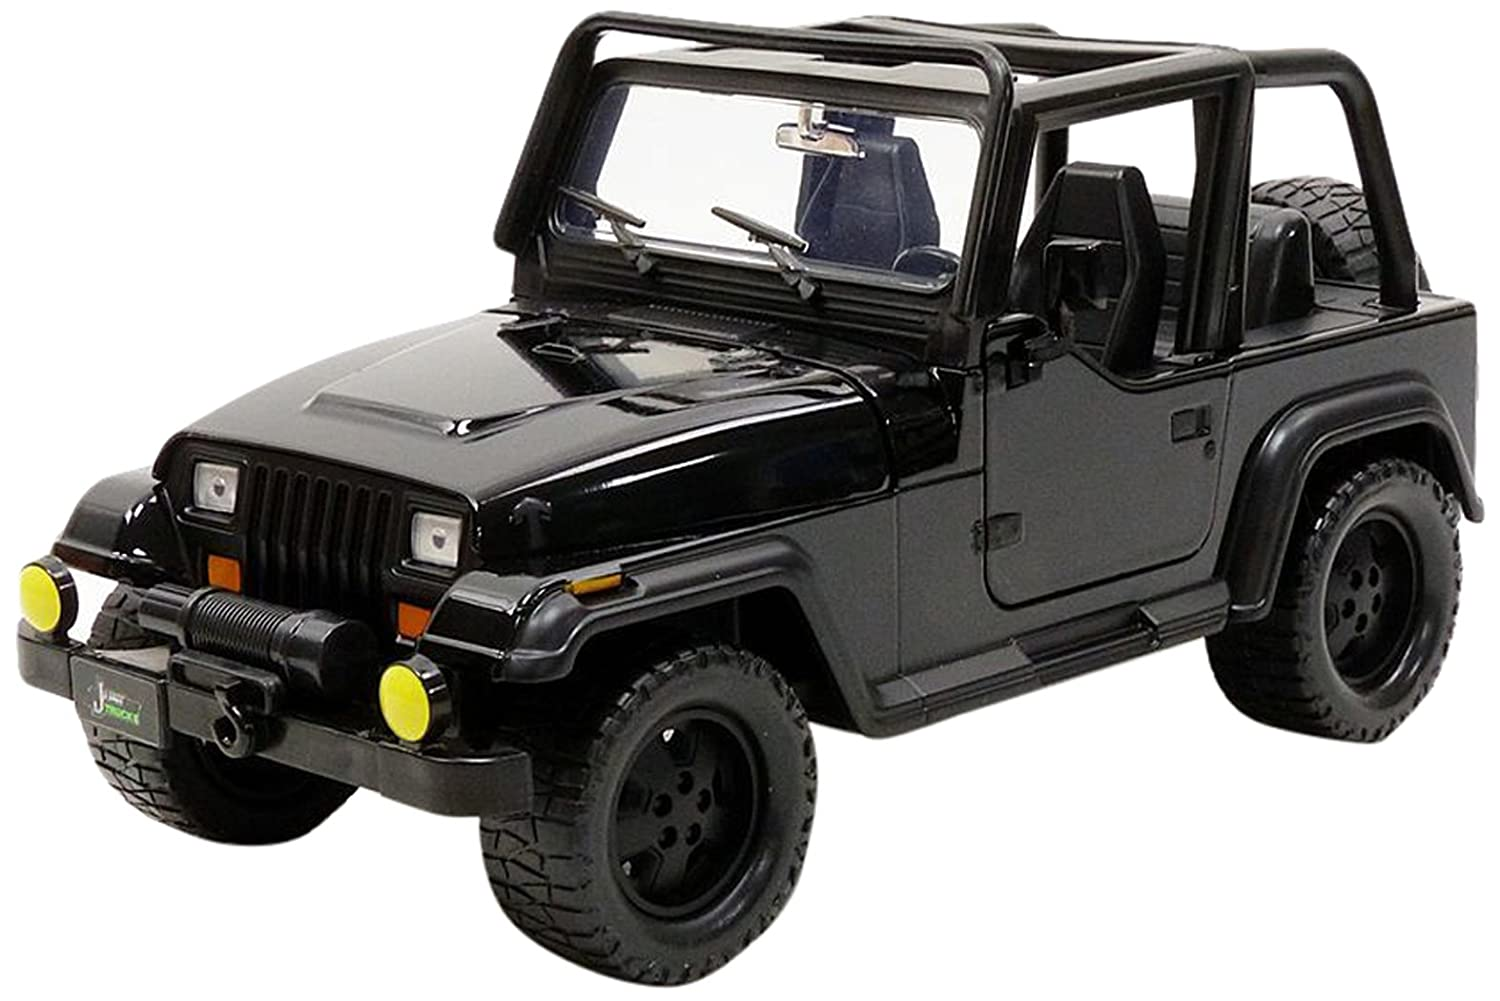 Jada 98083 1992 Jeep Wrangler Black 1 24 Diecast Model Car